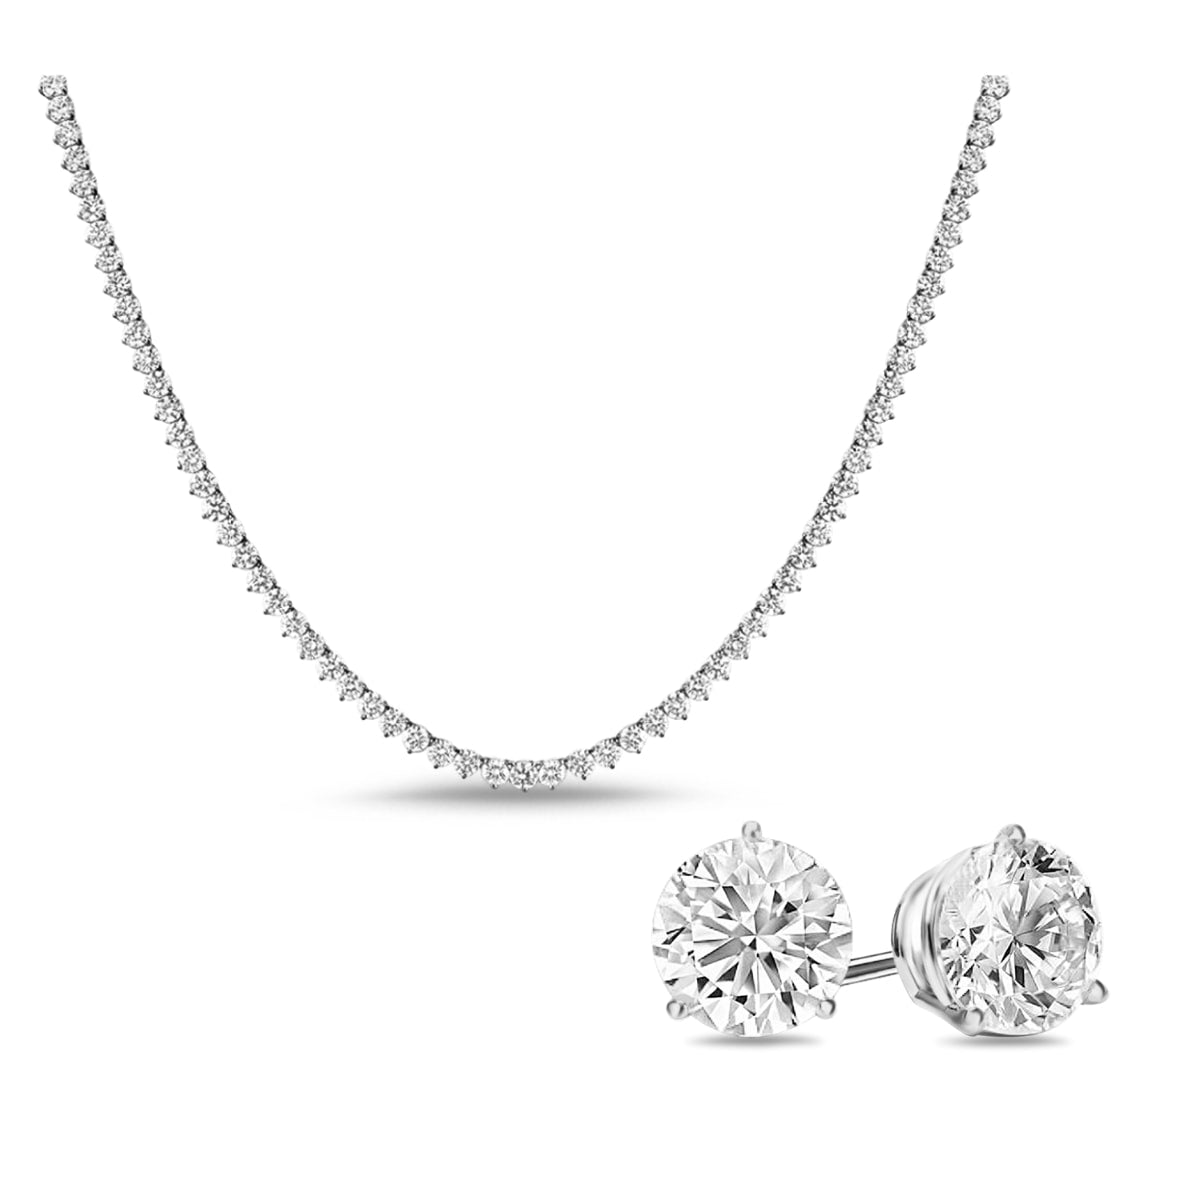 [PROMO BUNDLE] Vivere 3 Prong Necklace Earrings Diamond Set